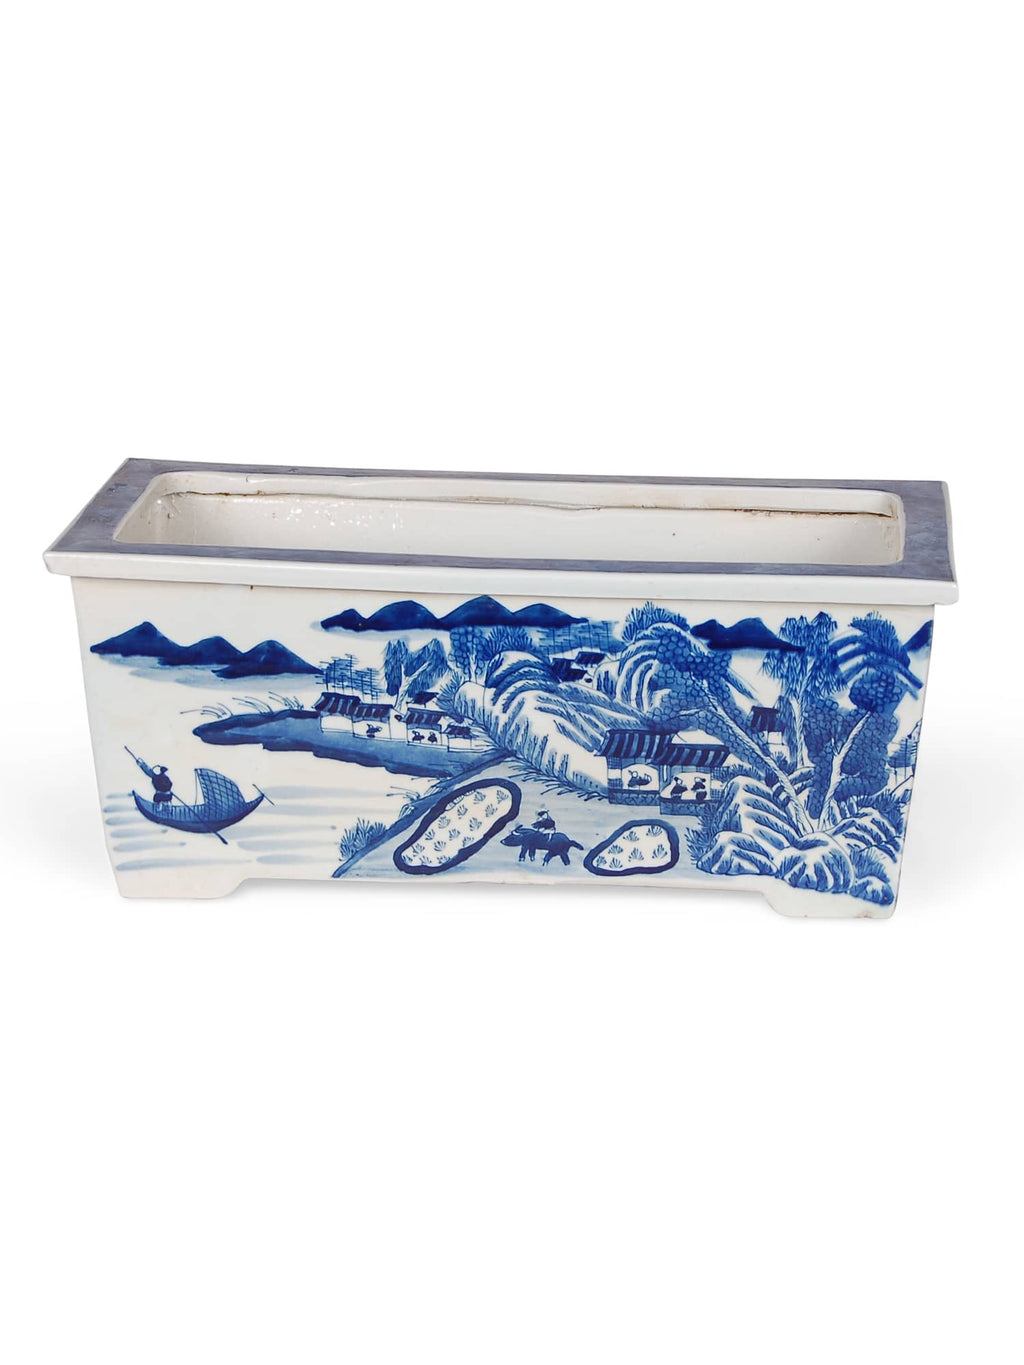 Blue and White Rectangular Planter